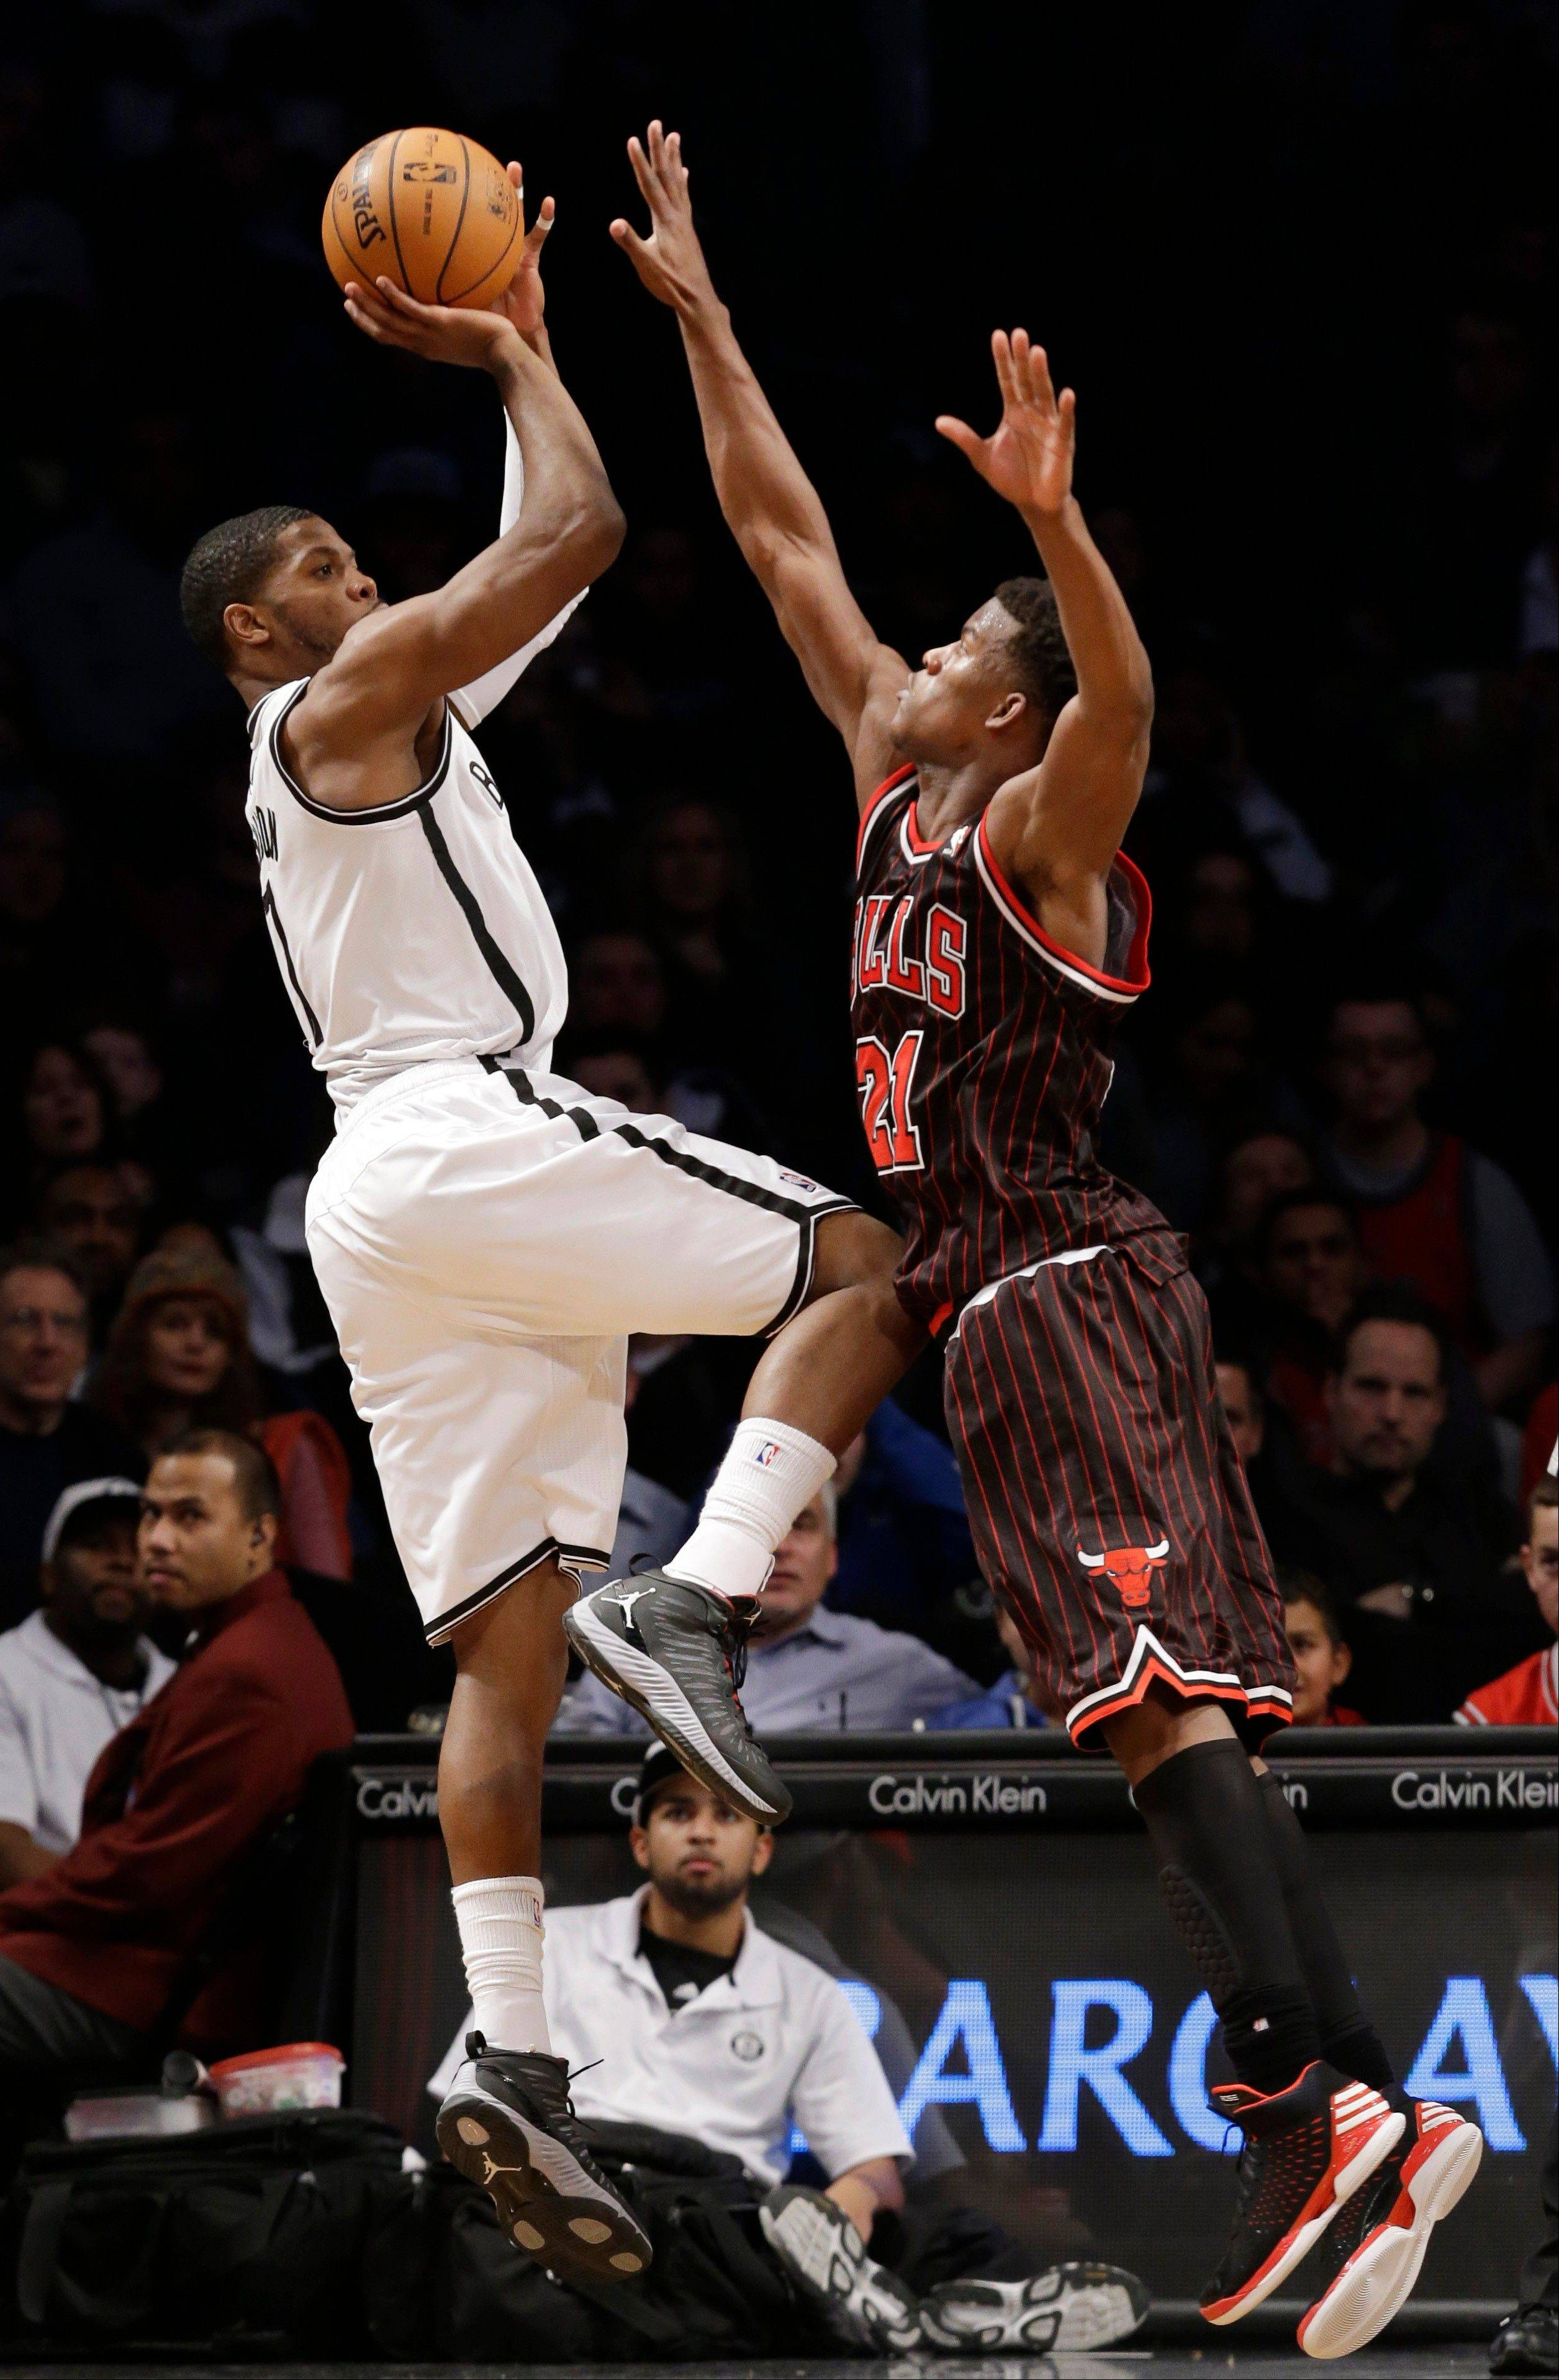 Brooklyn Nets guard C.J. Watson (1) shoots a three-point basket as Chicago Bulls forward Jimmy Butler (21) defends in the second half of their NBA basketball game at the Barclays Center, Friday, Feb. 1, 2013, in New York. Watson had 13 points as the Nets defeated the Bulls 93-89.